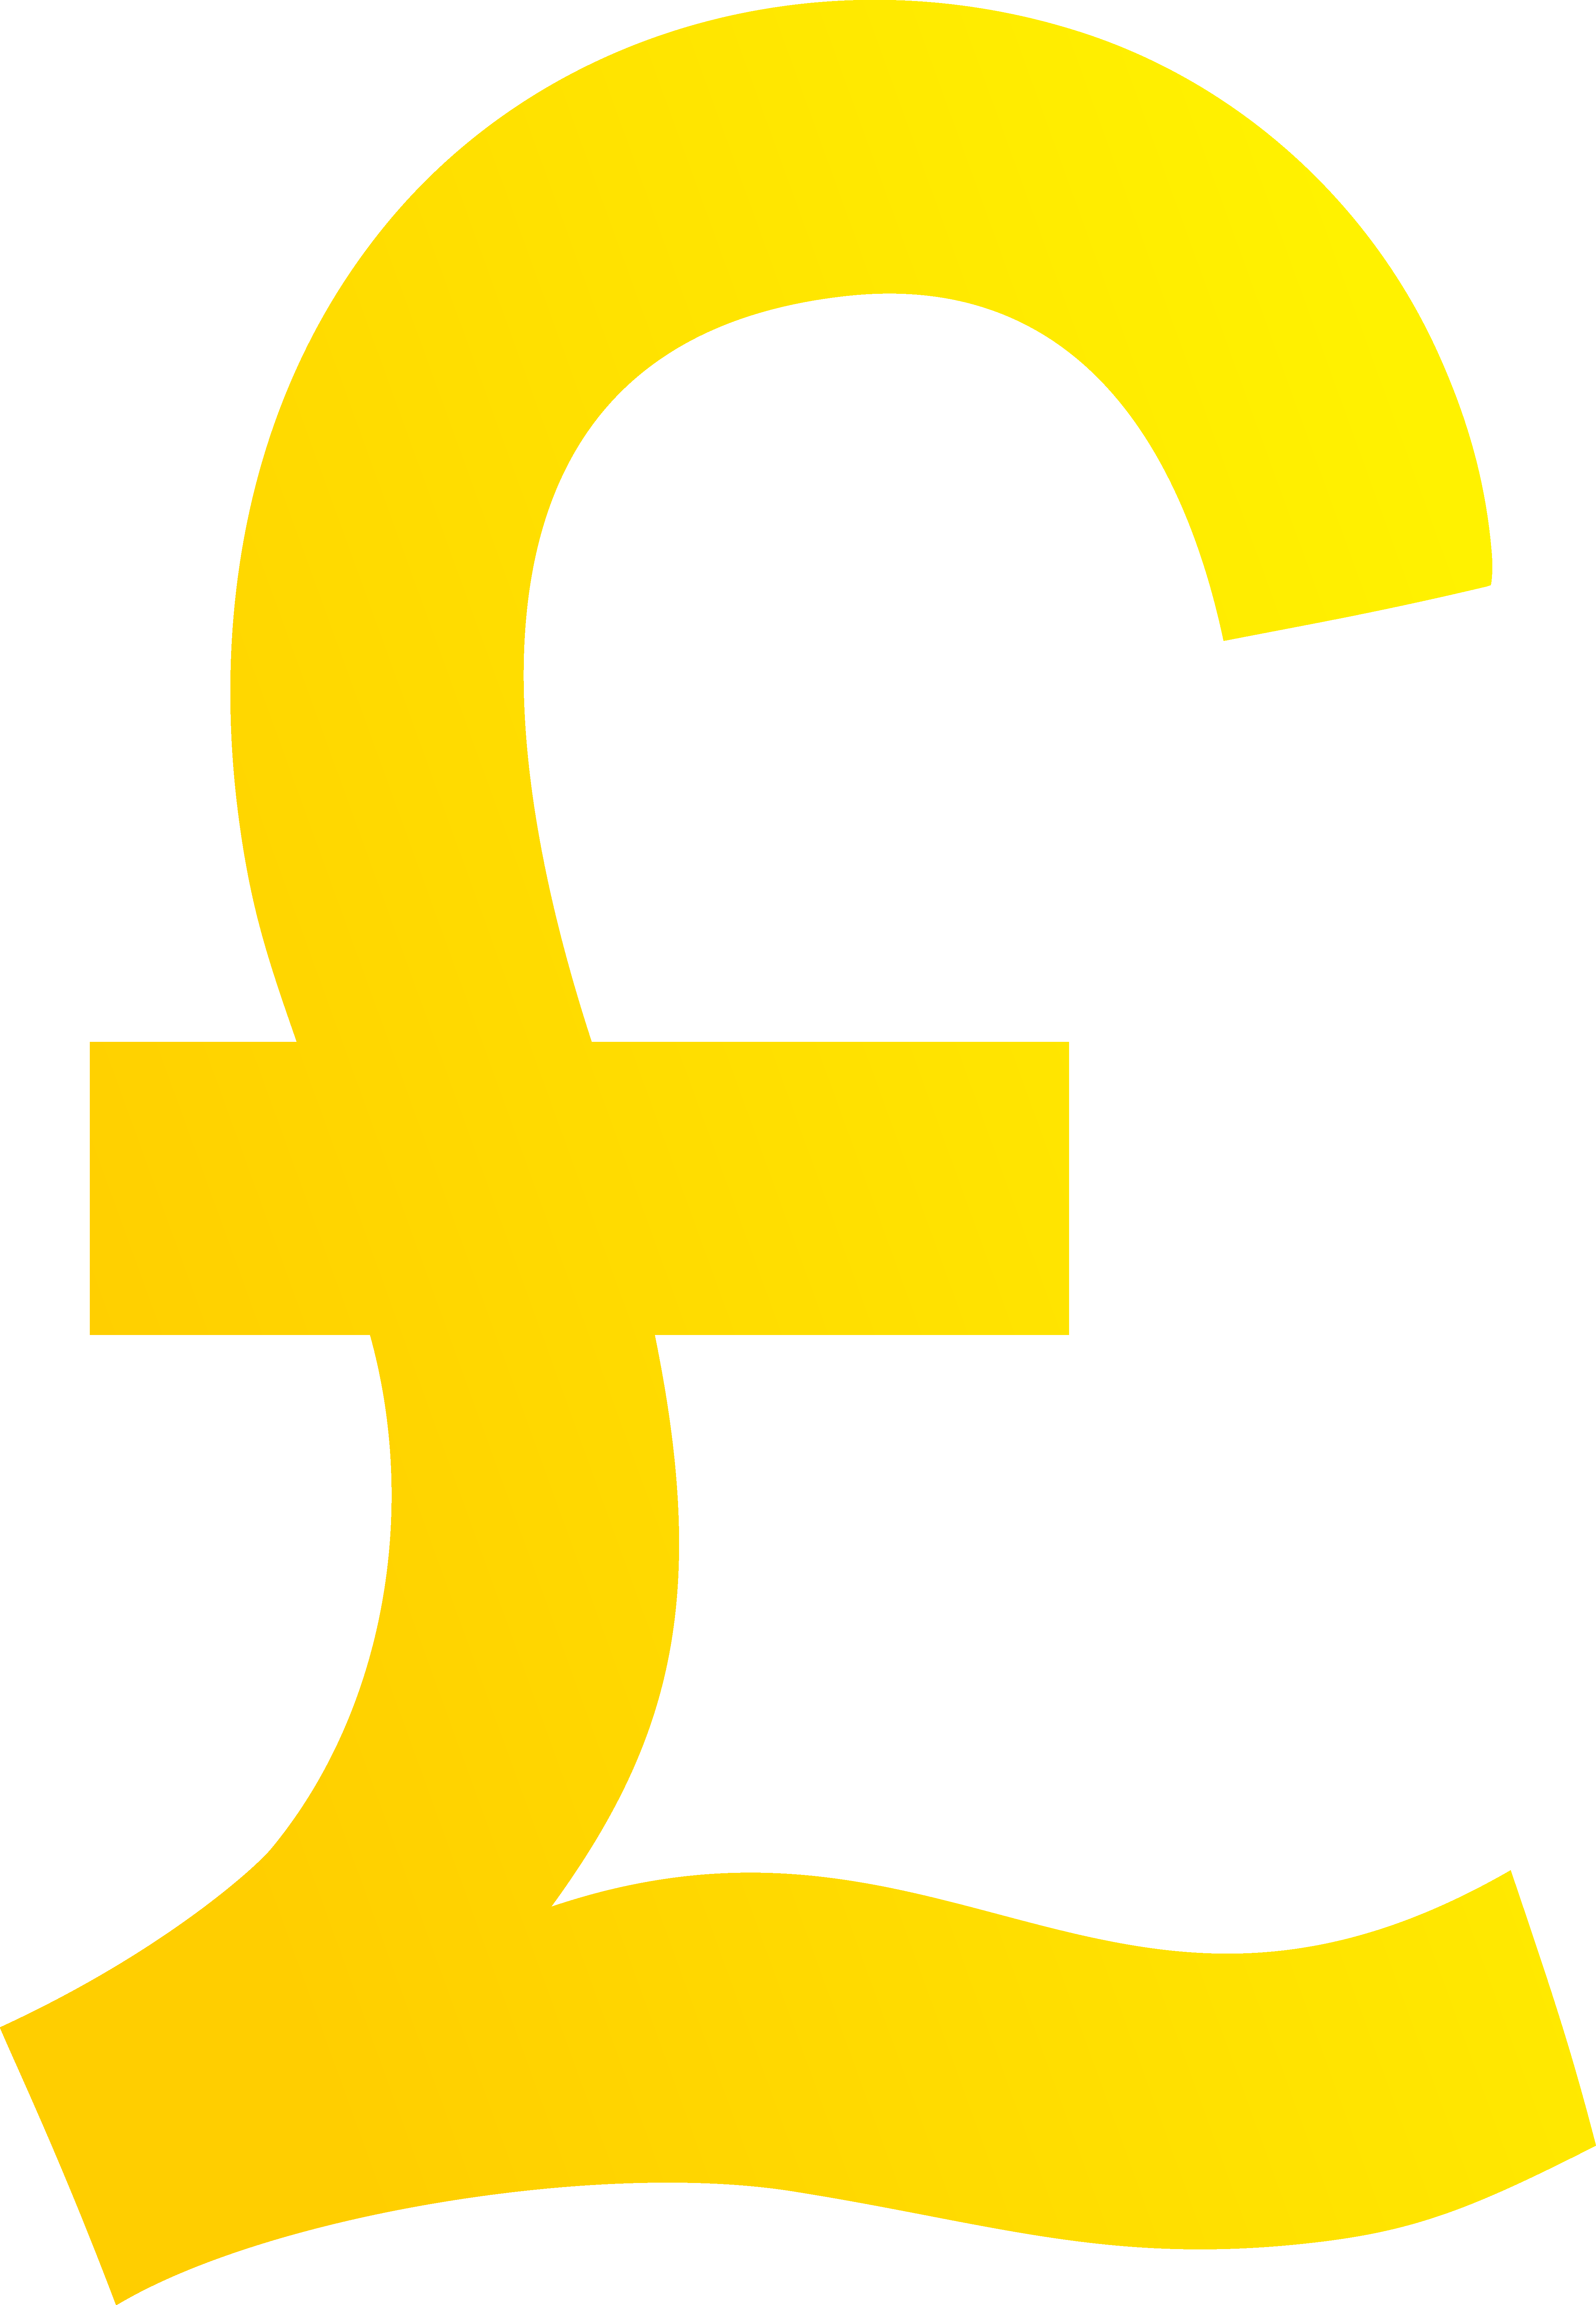 Pound sterling clipart